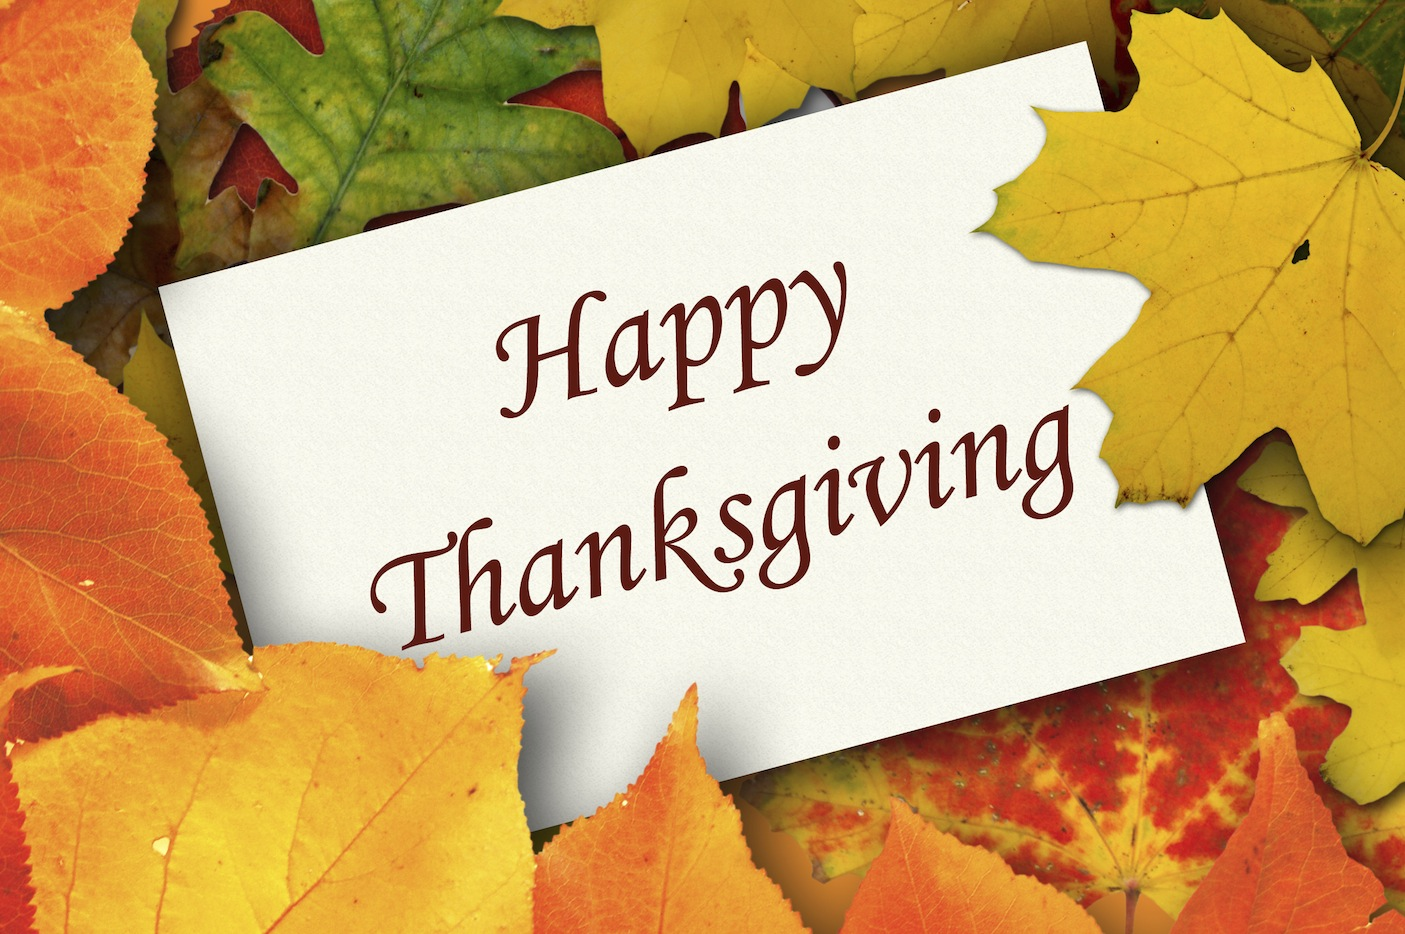 Happy Thanksgiving Images 2019 – Free Thanksgiving Images For Facebook & WhatsApp